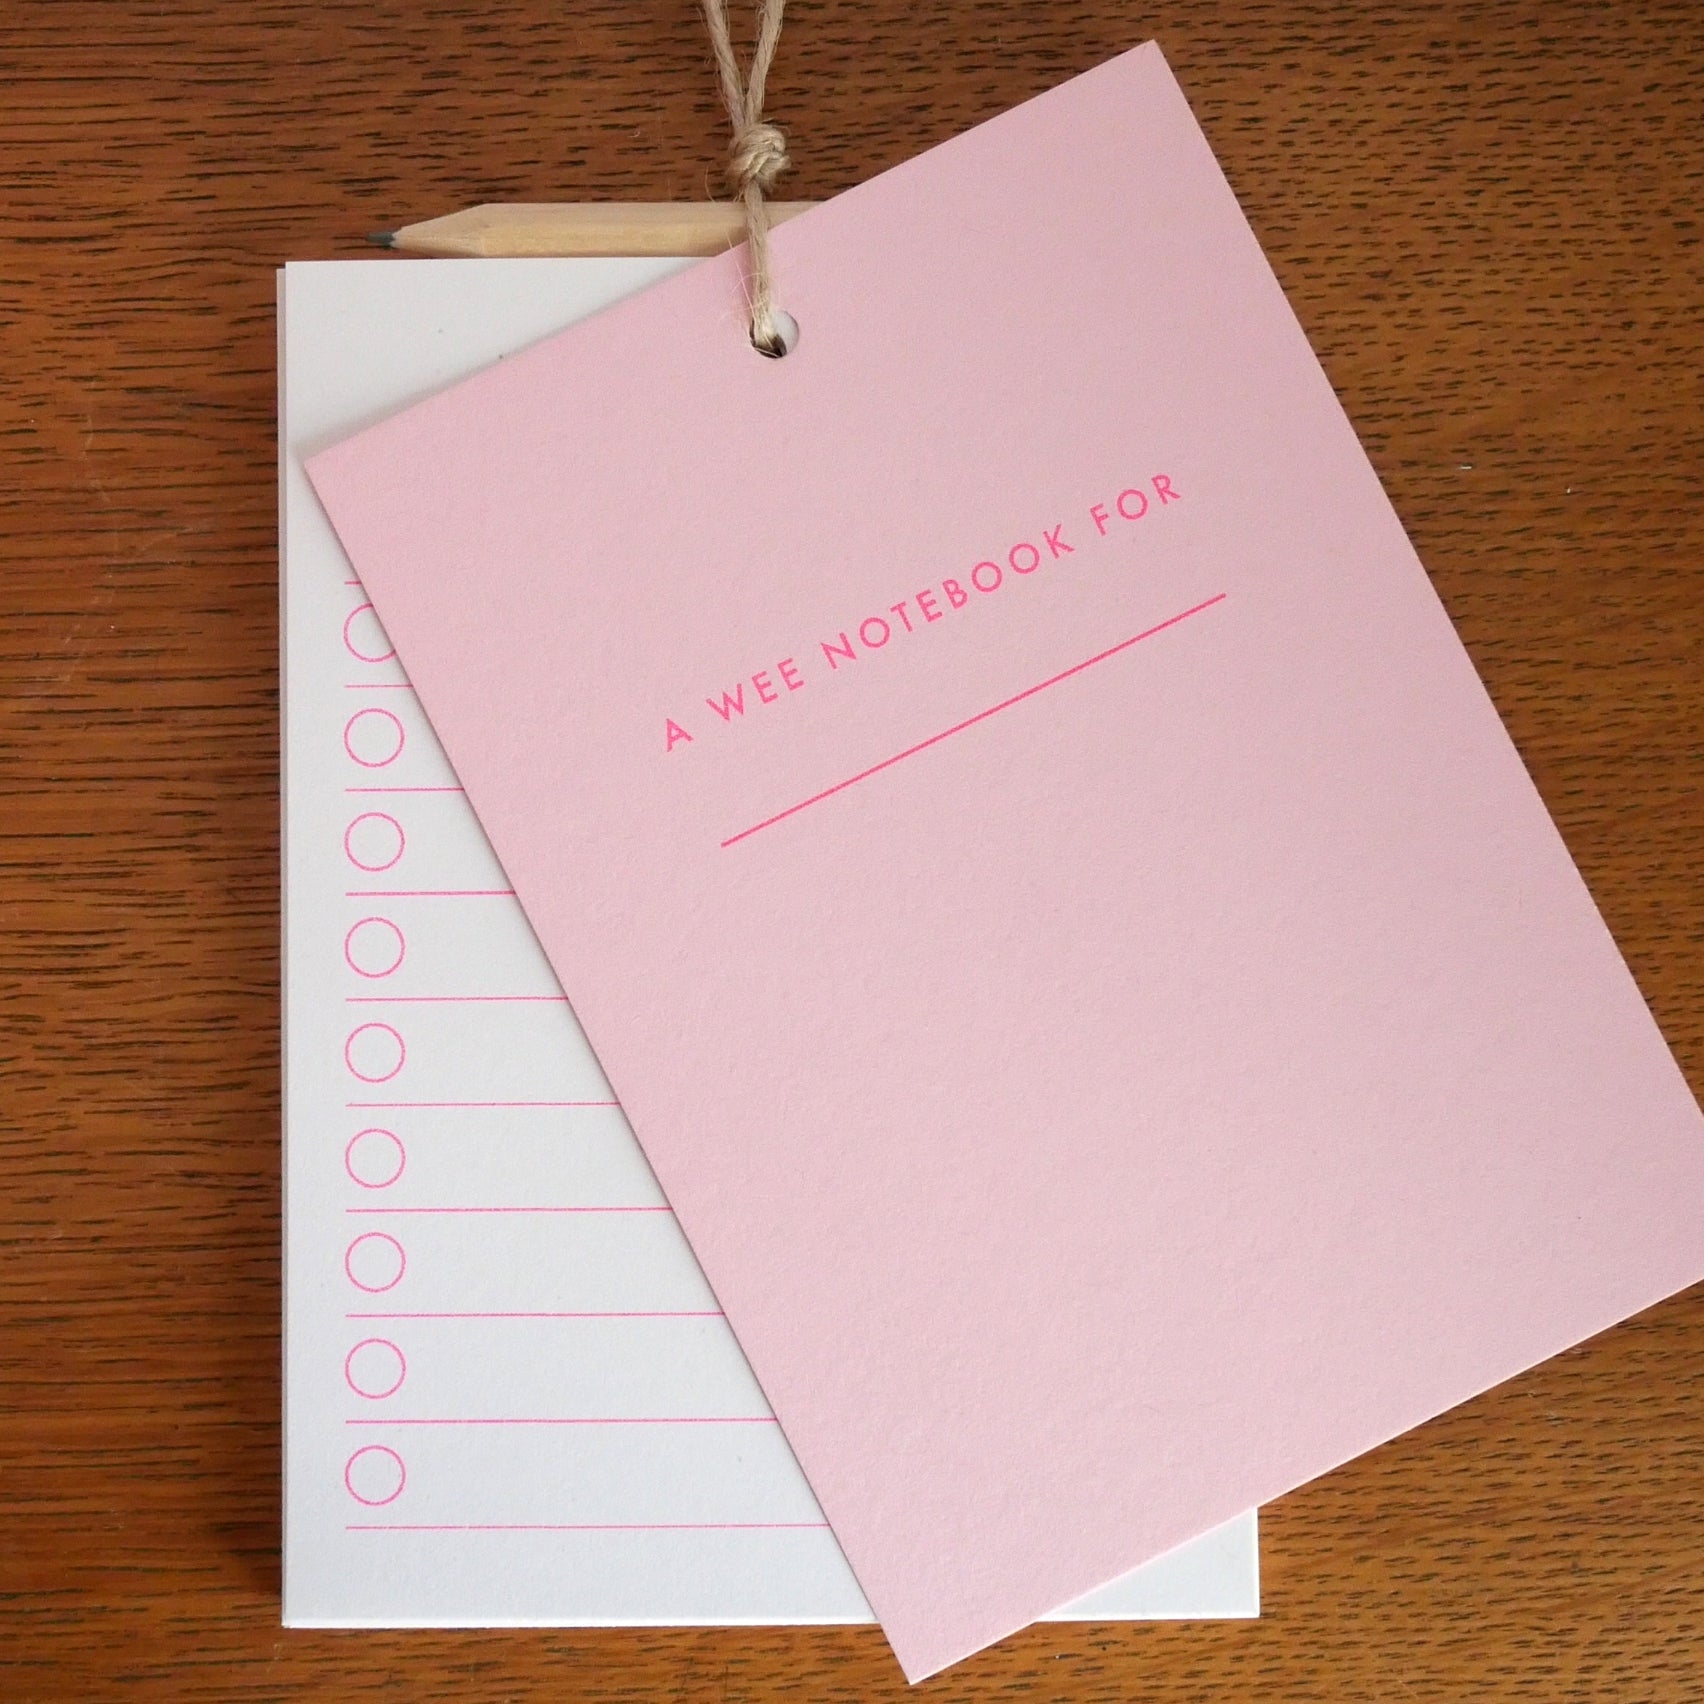 Notebook - The Wee Pink One